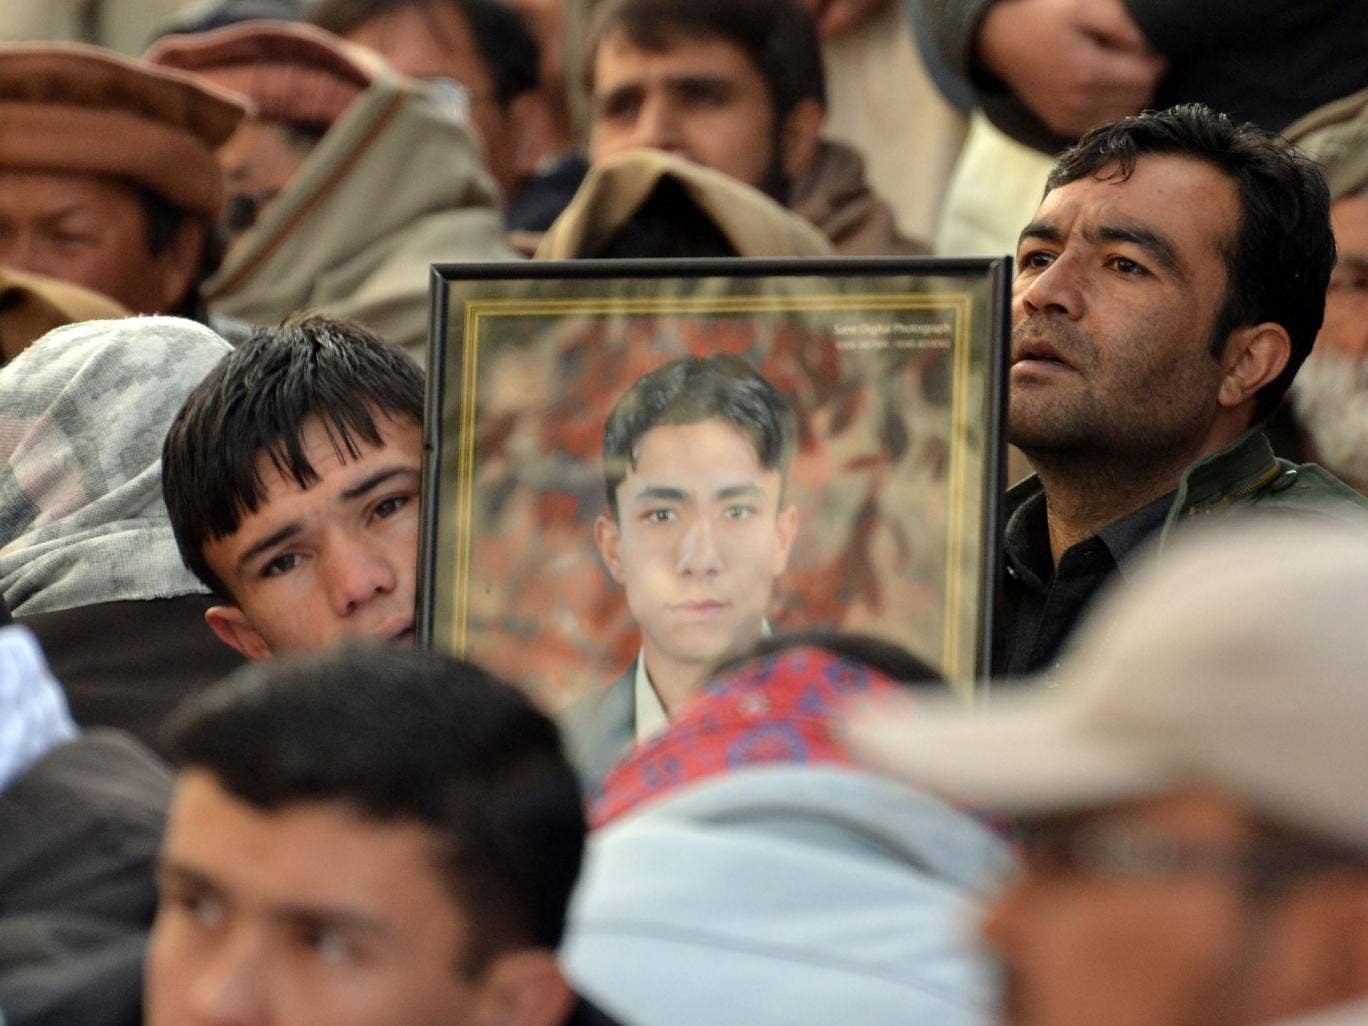 Raw grief: Demonstration in Quetta after last week's bombings in which 82 died